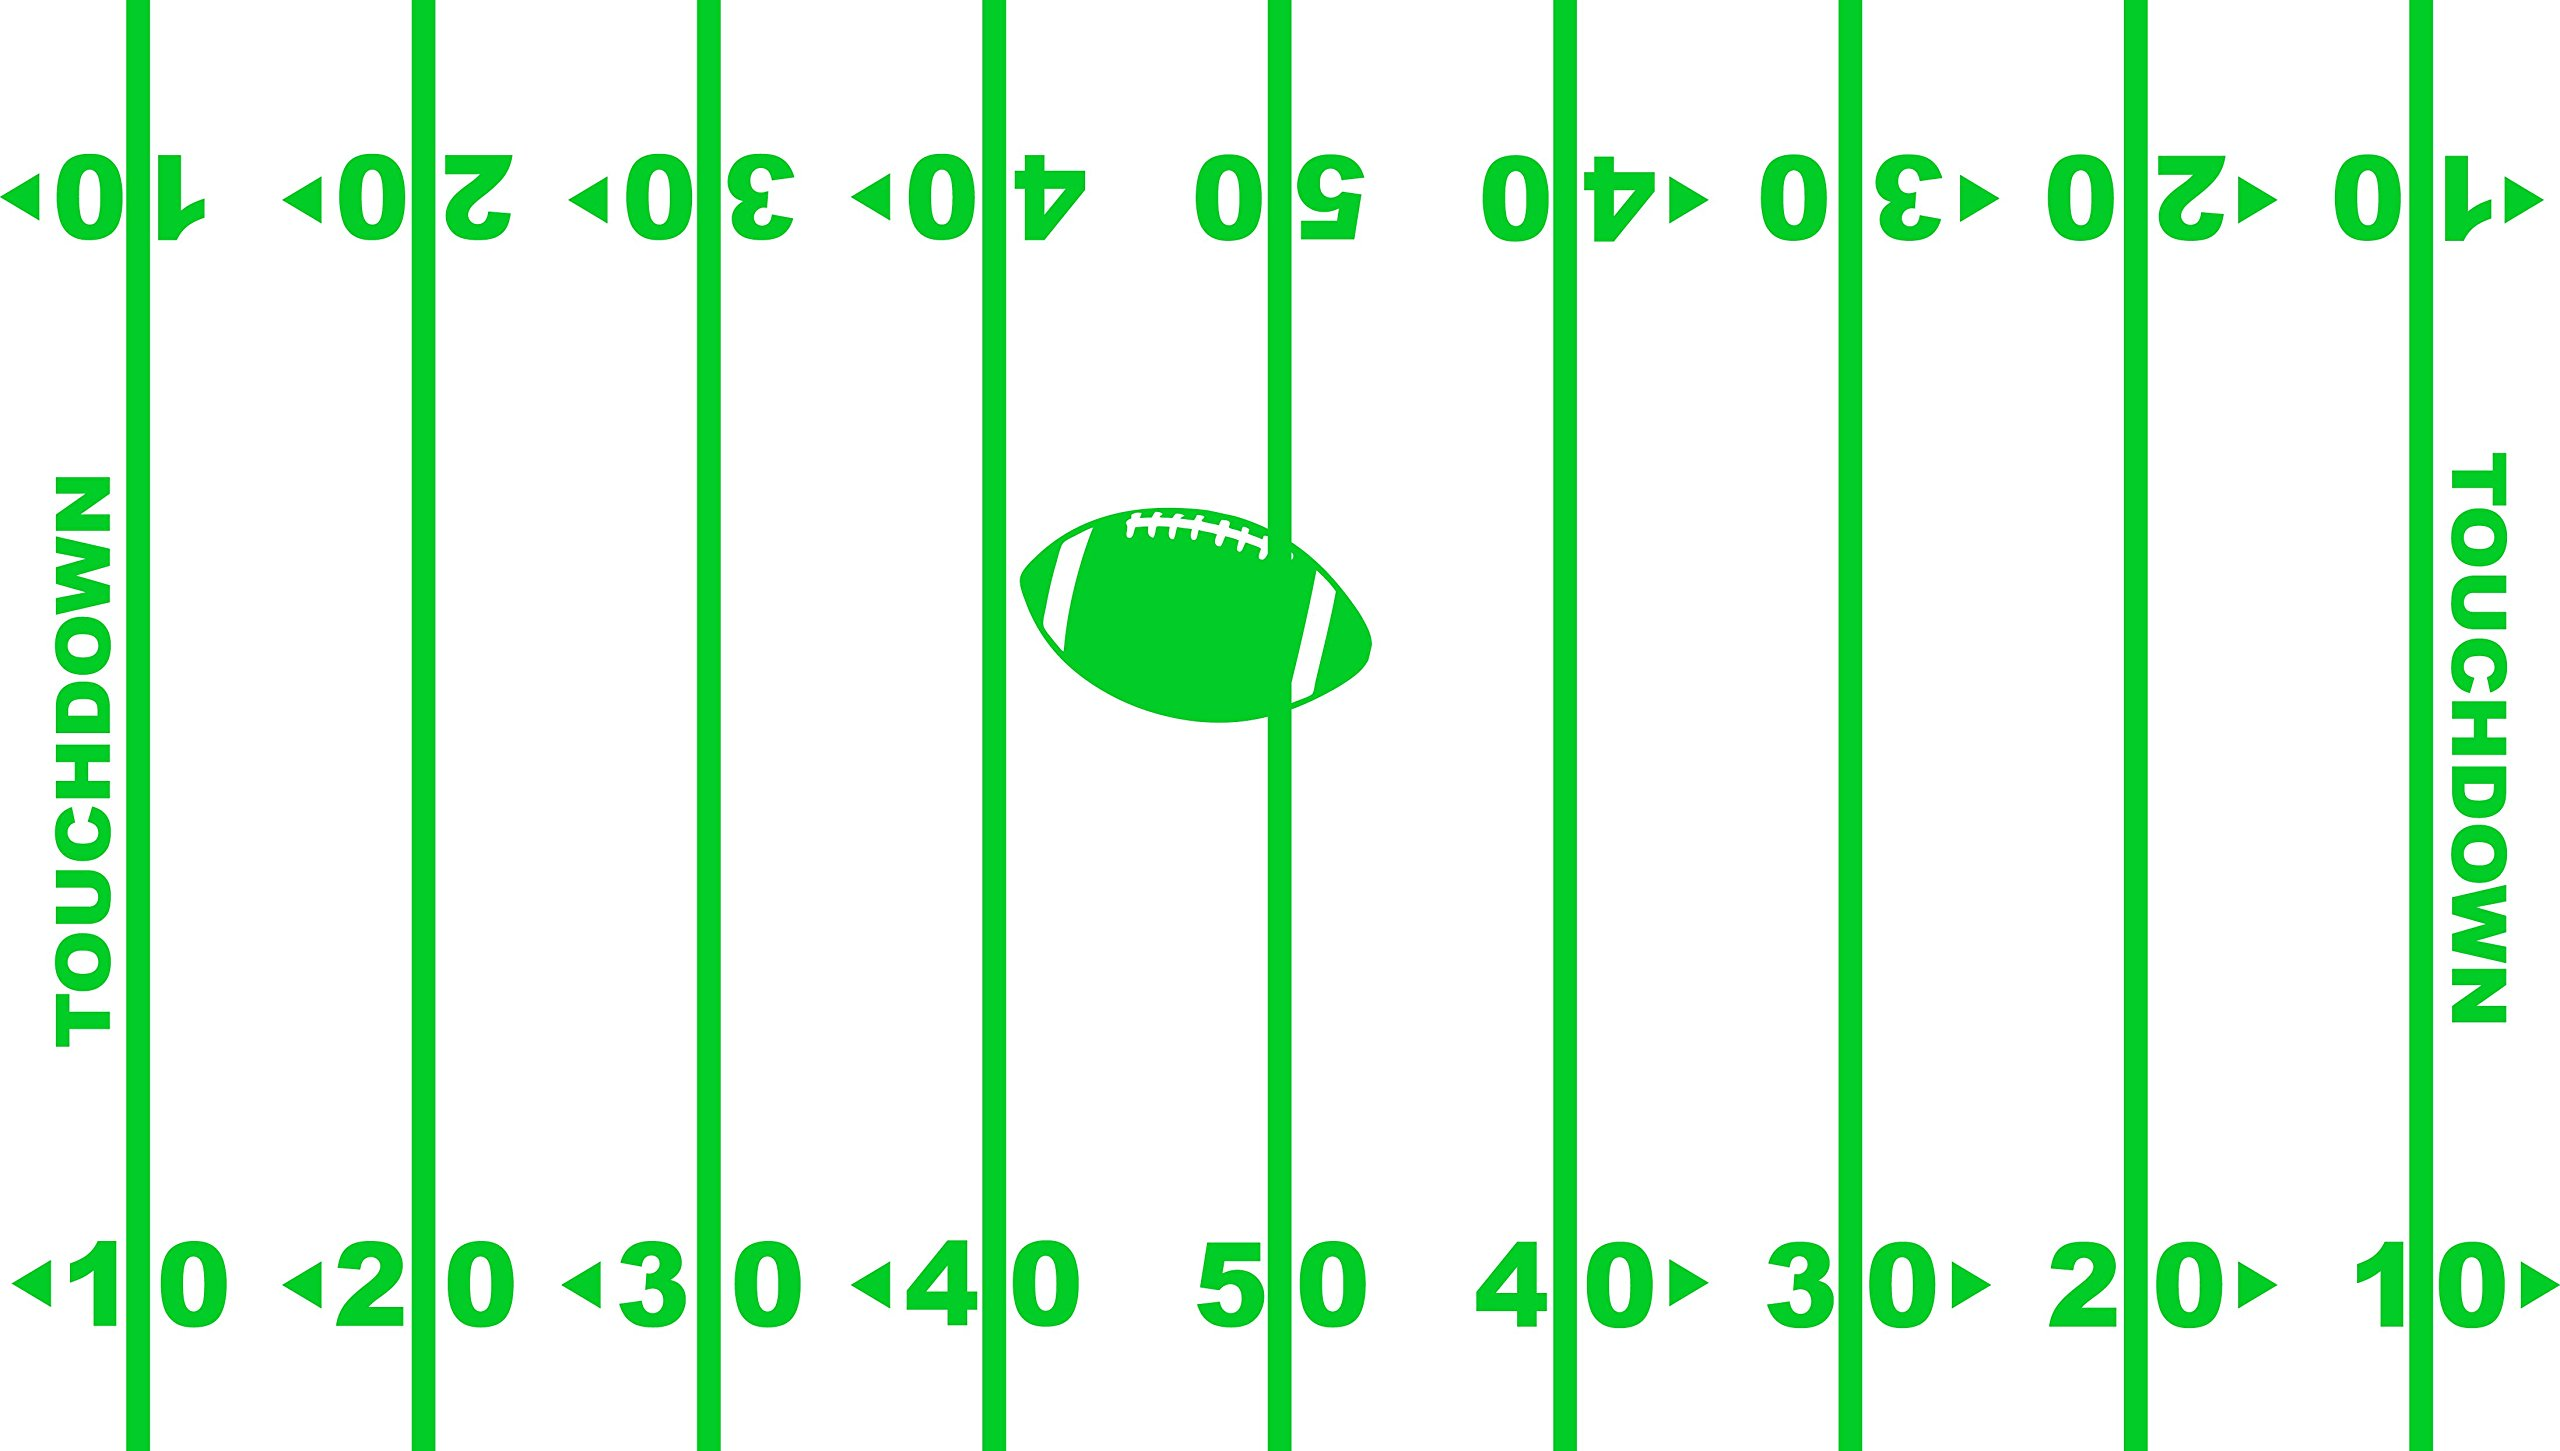 Chic Walls Removable Football Field Yard Line NFL Wall Window Floor Ceiling Art Décor Decal Vinyl Sticker Mural Nursery Children Kids Bedroom Sports Bar Basement Living Room Green 65'' tall